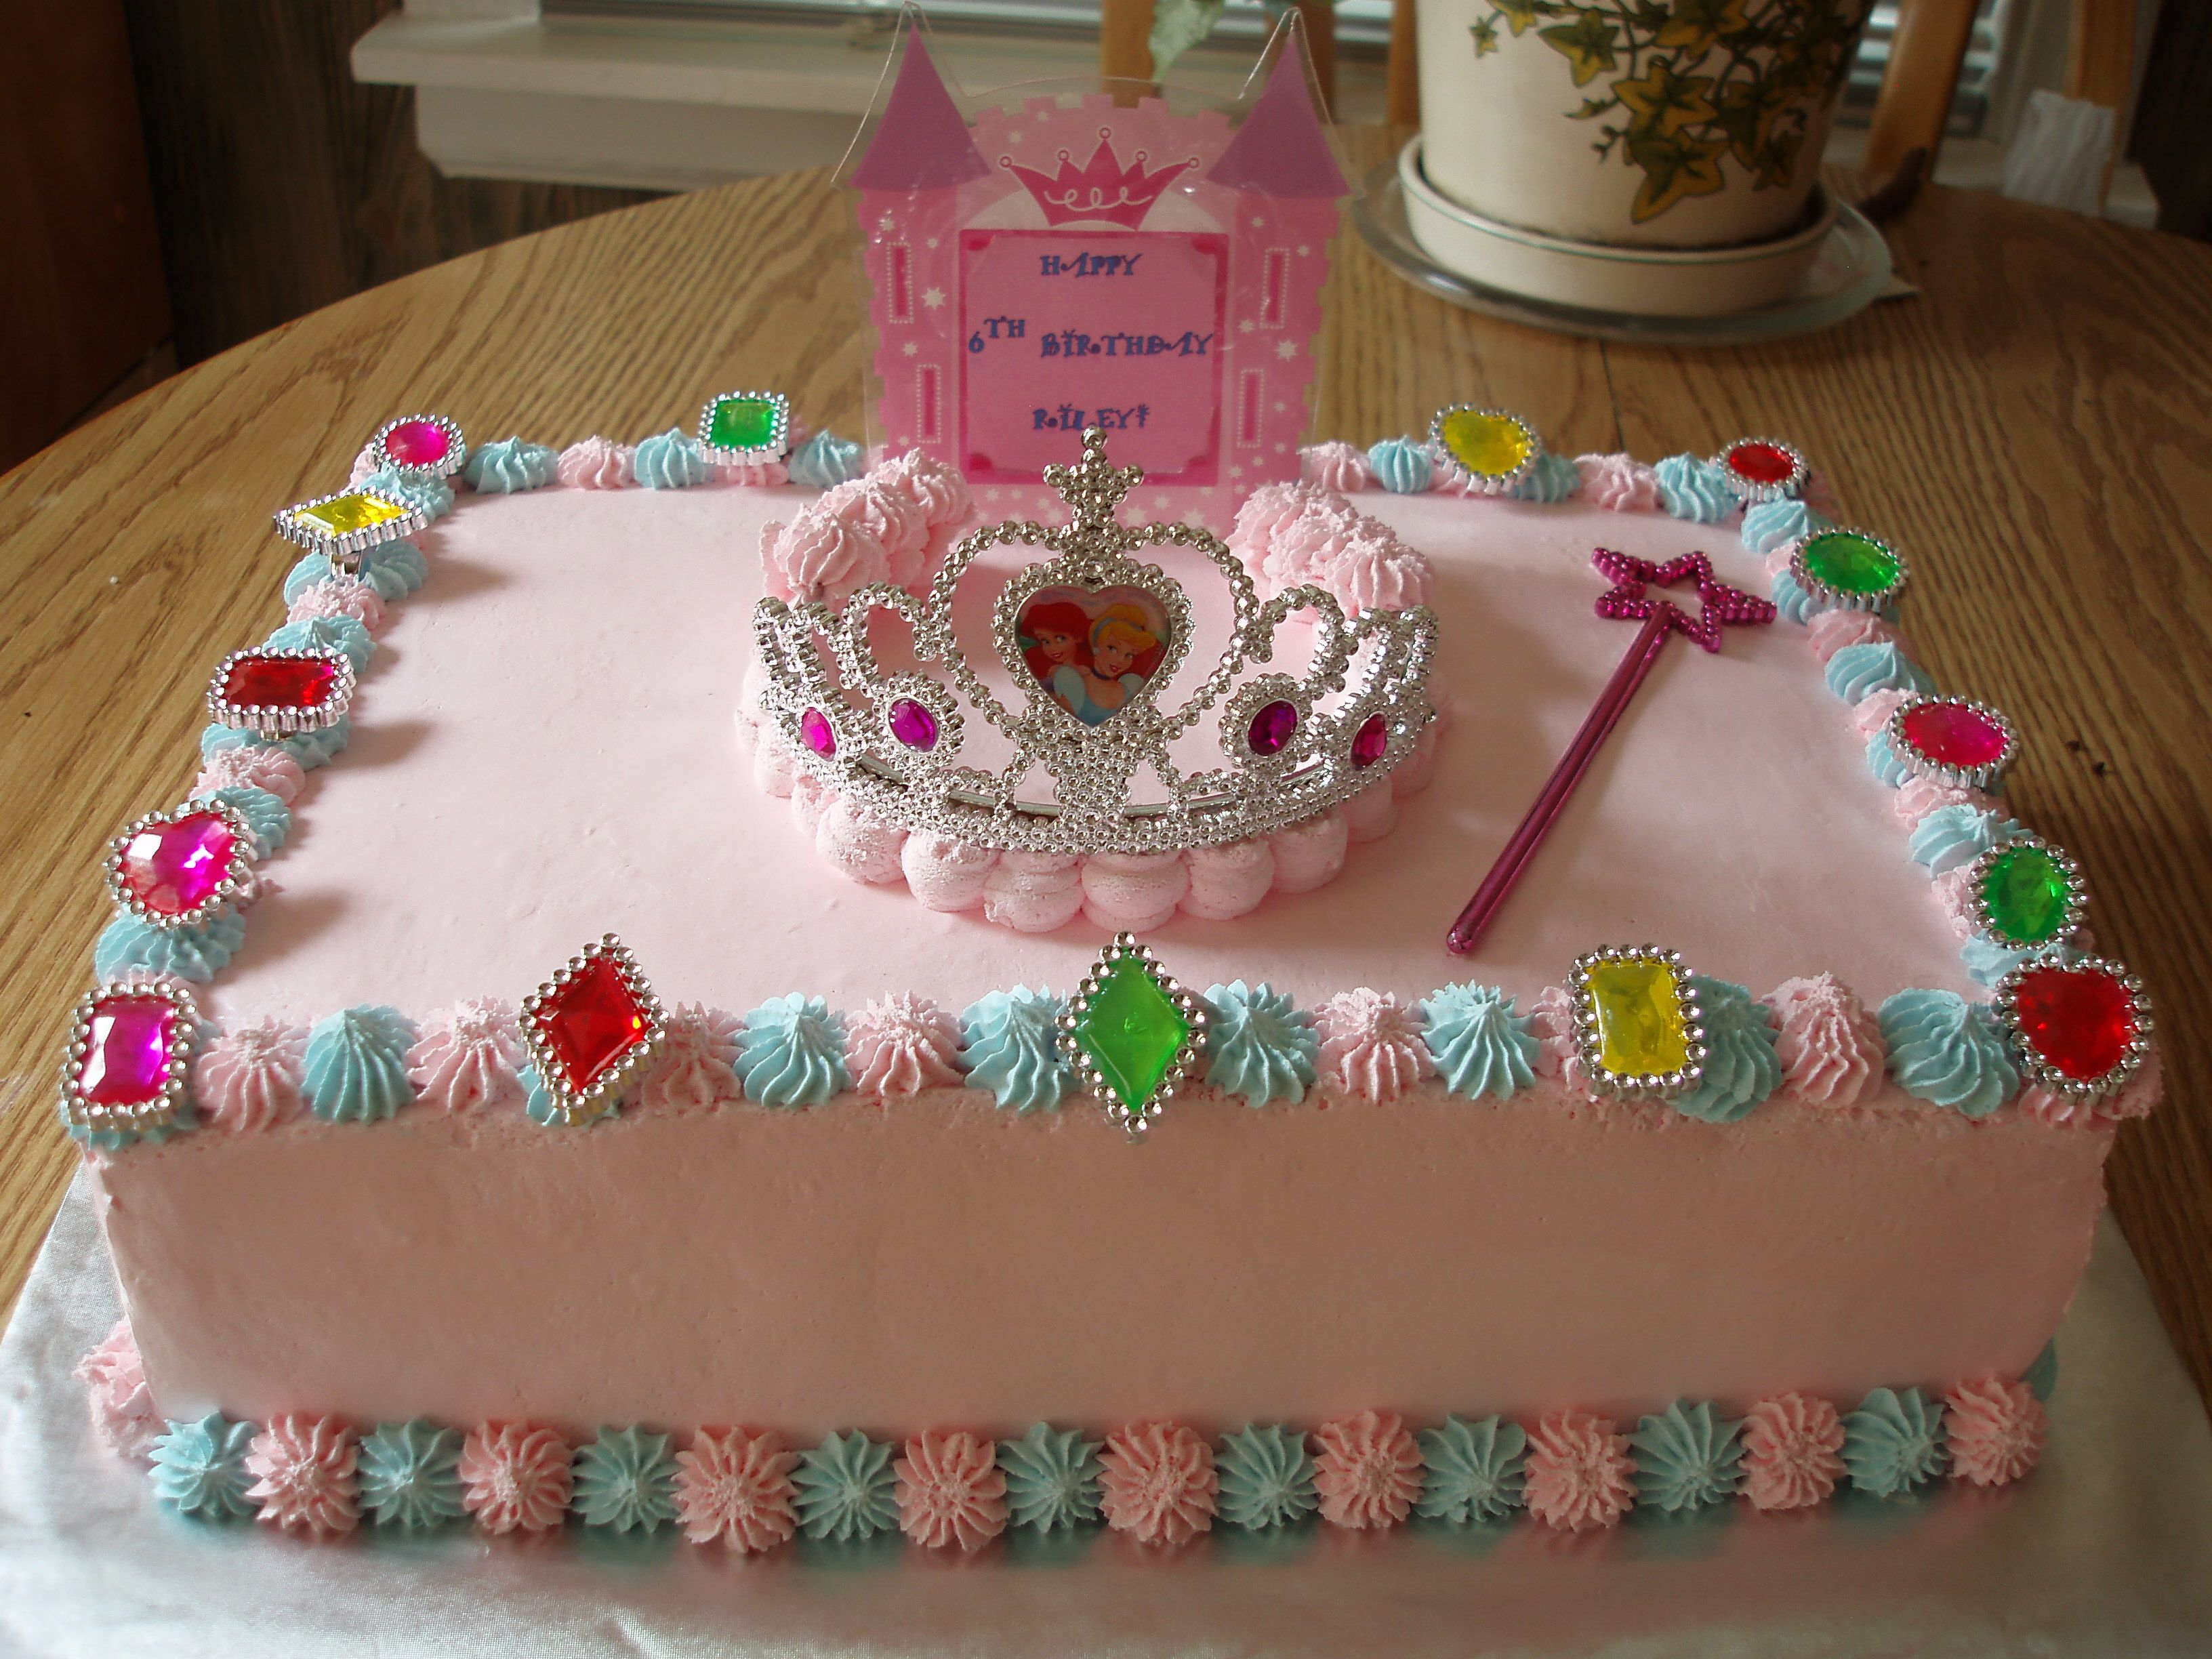 Princess Cake Chocolate cake filled with whipped cream and topped